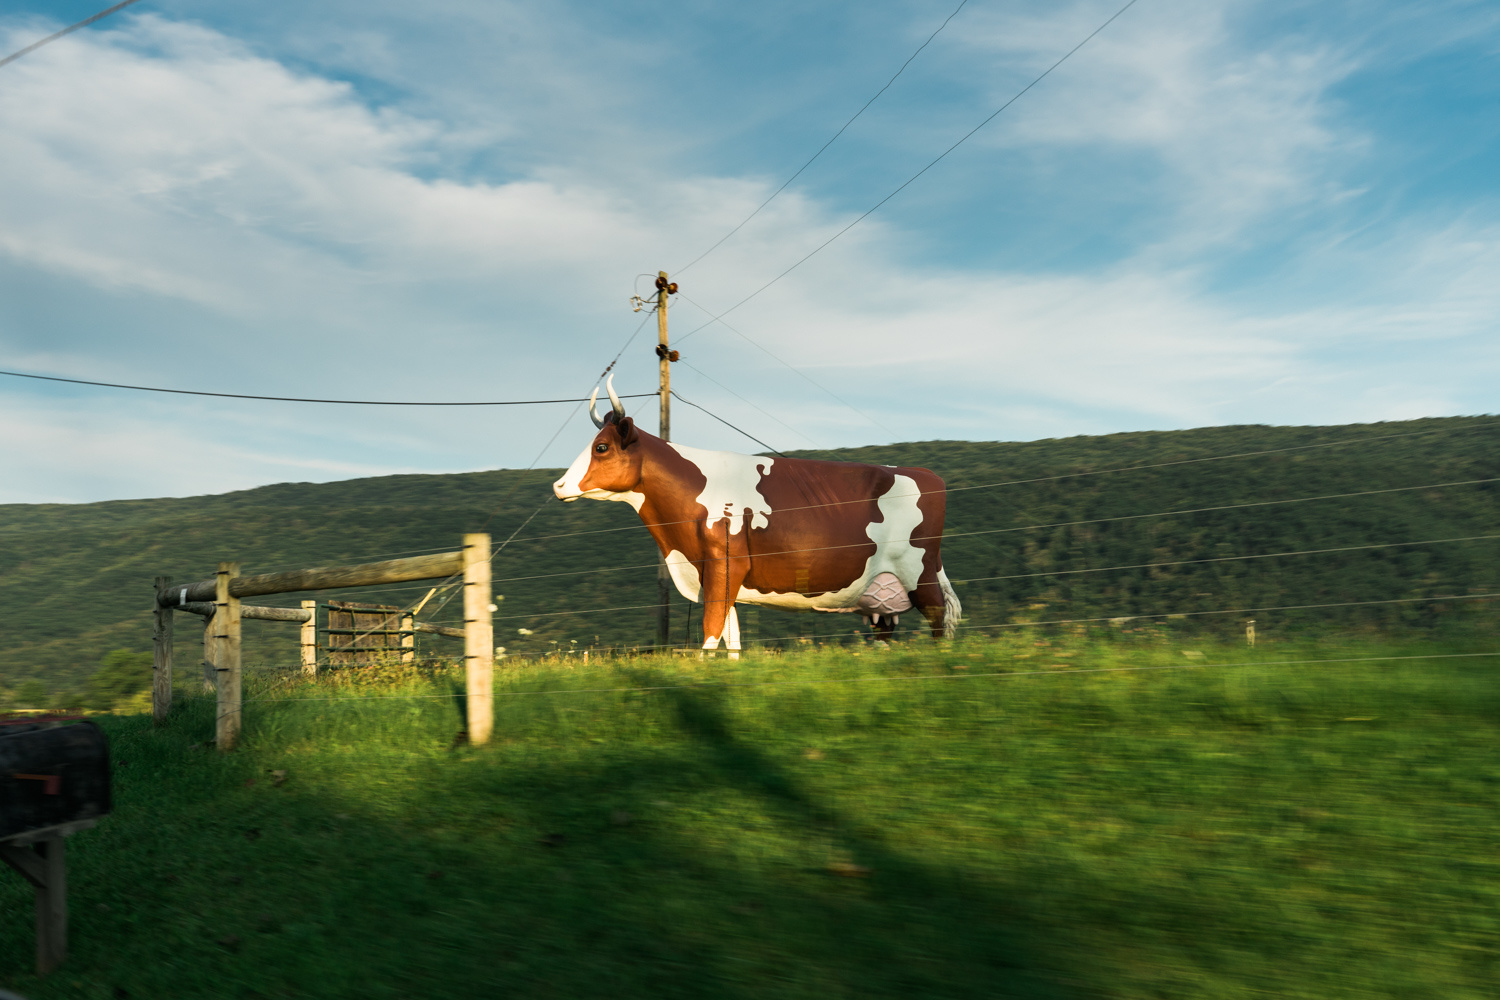 Cow Statue in rural Pennsylvania - travel photography